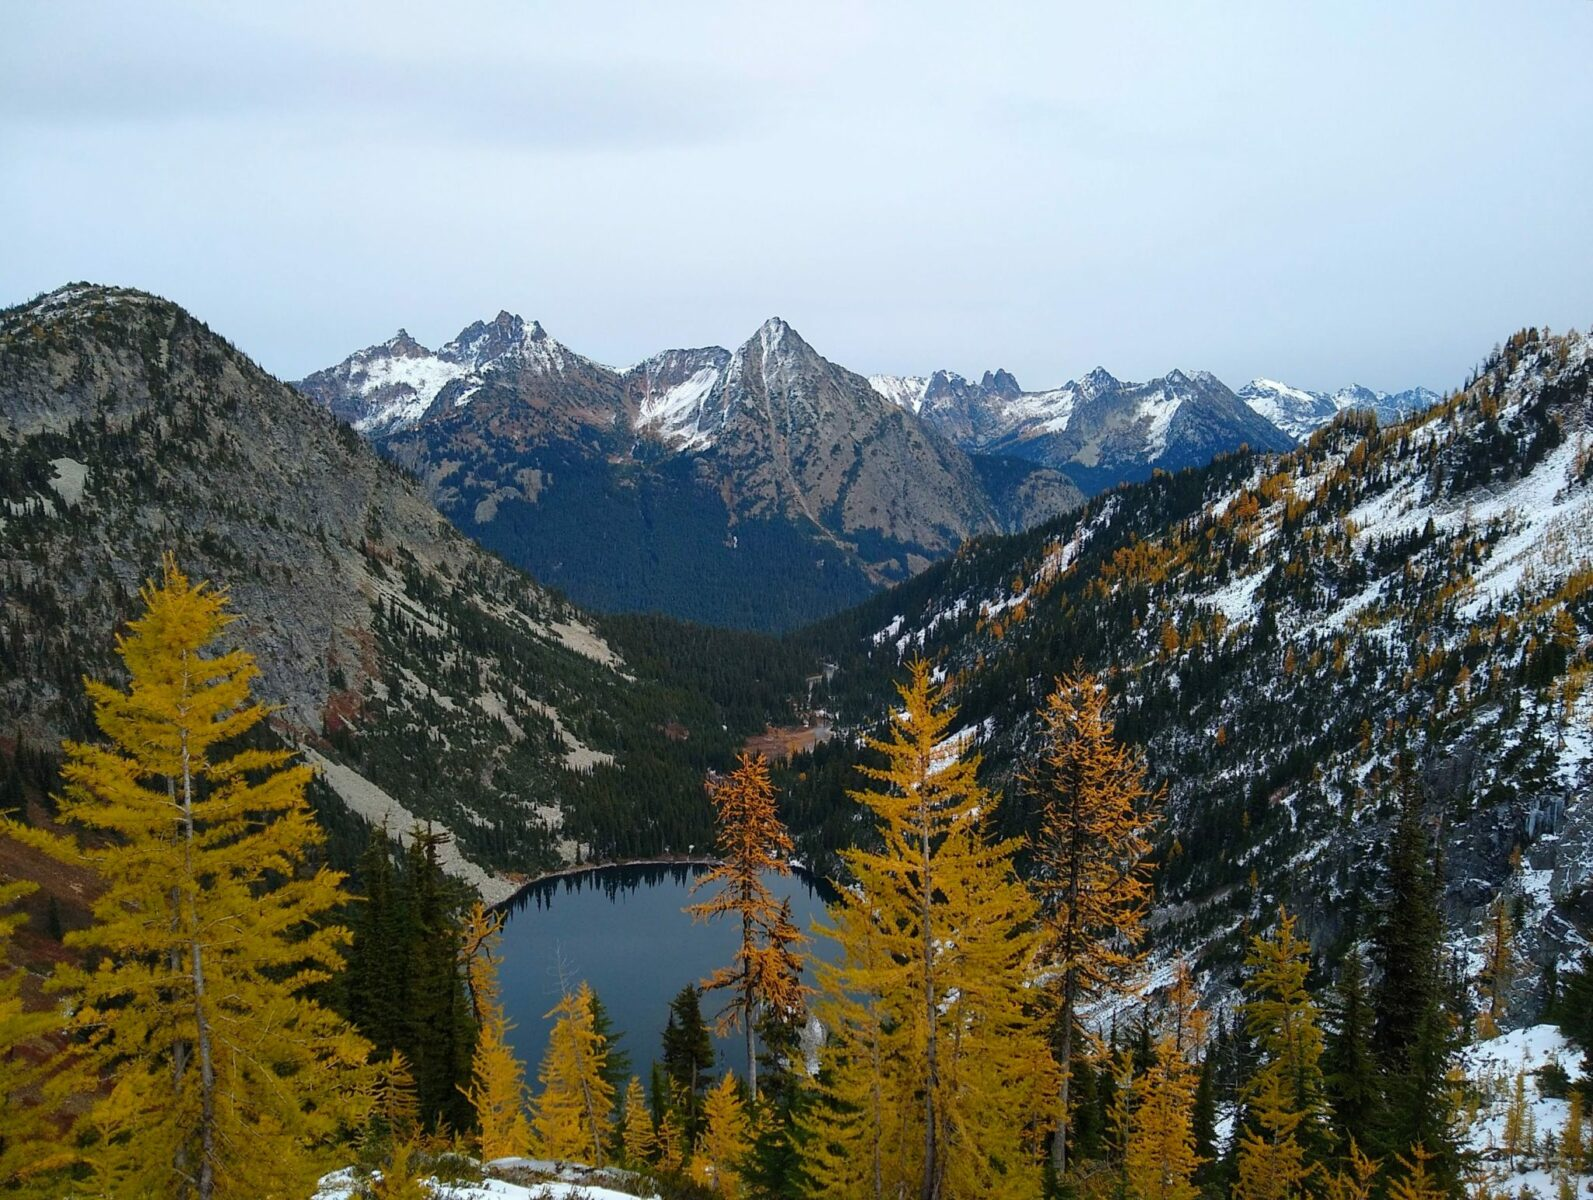 Golden larch trees in the foreground frame an alpine lake below. The lake is surrounded by high mountains with a dusting of snow. It's an overcast day along the Maple Pass trail, one of the best larch hikes in Washington